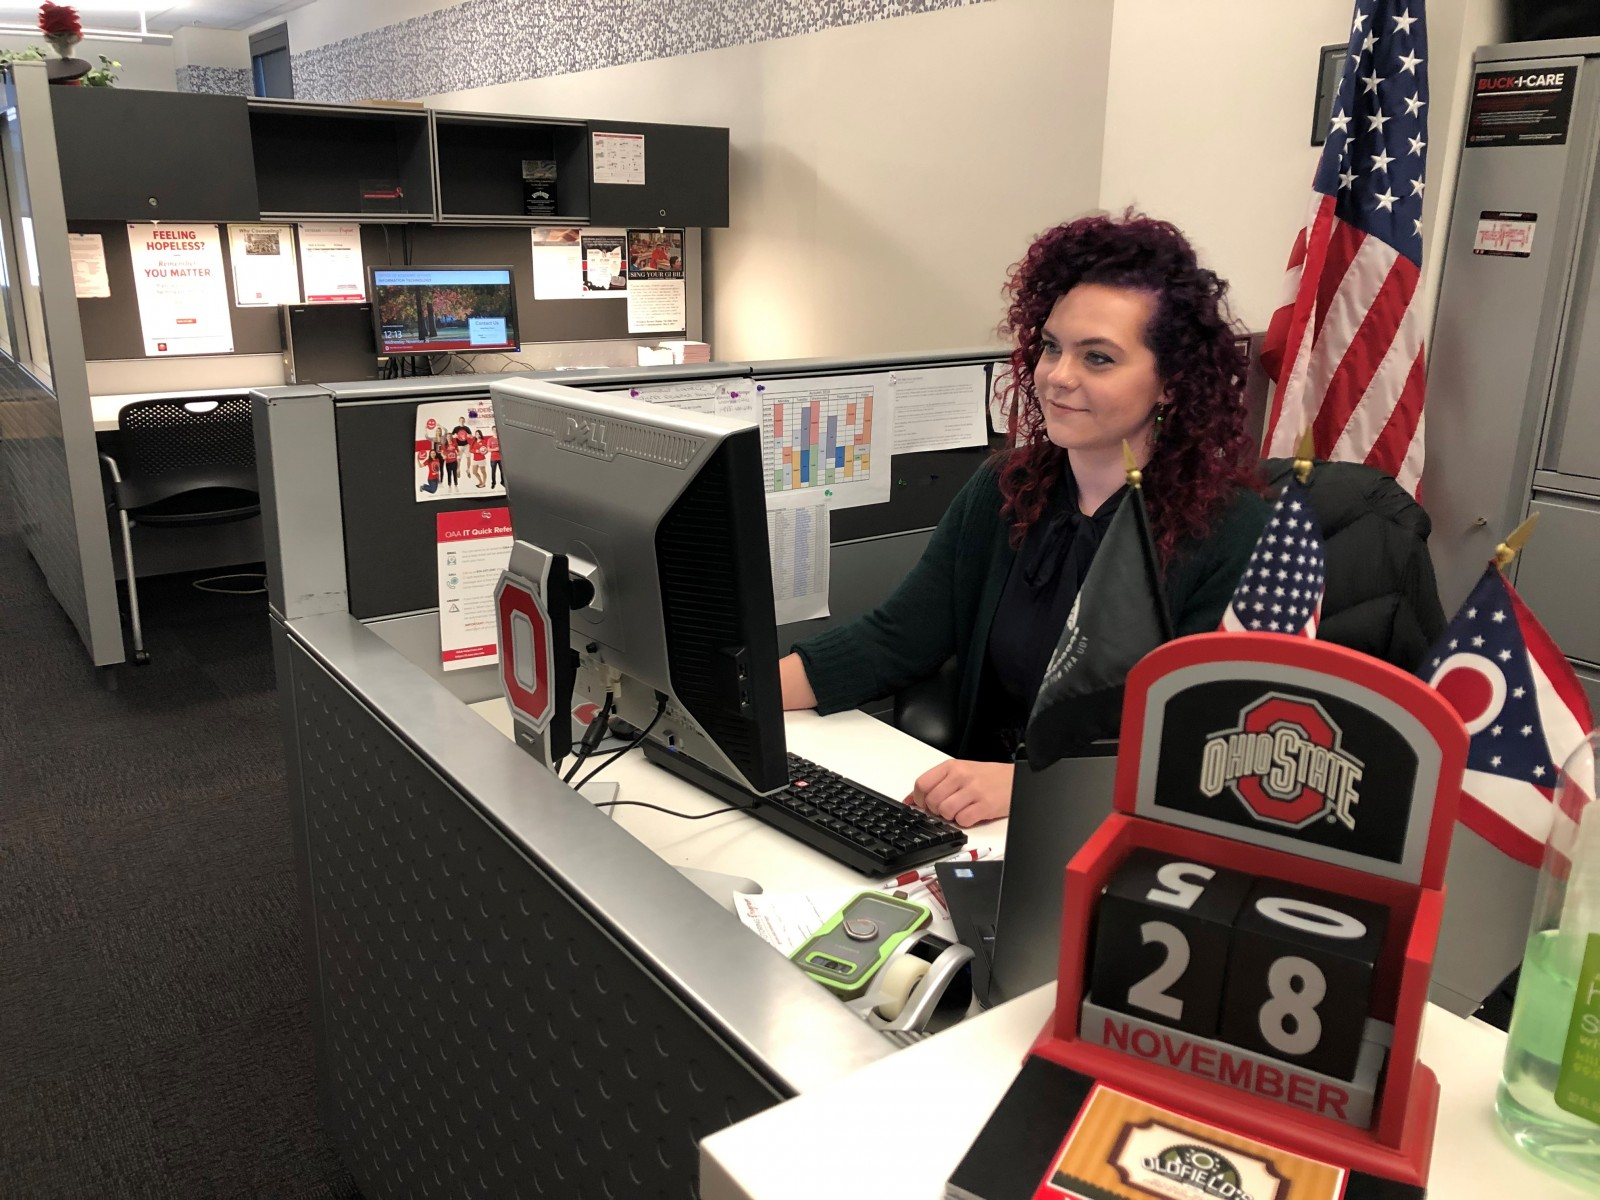 Hannah Rodas, a Peer to Peer sponsor at Ohio State, works at the Office of Military and Veterans Services